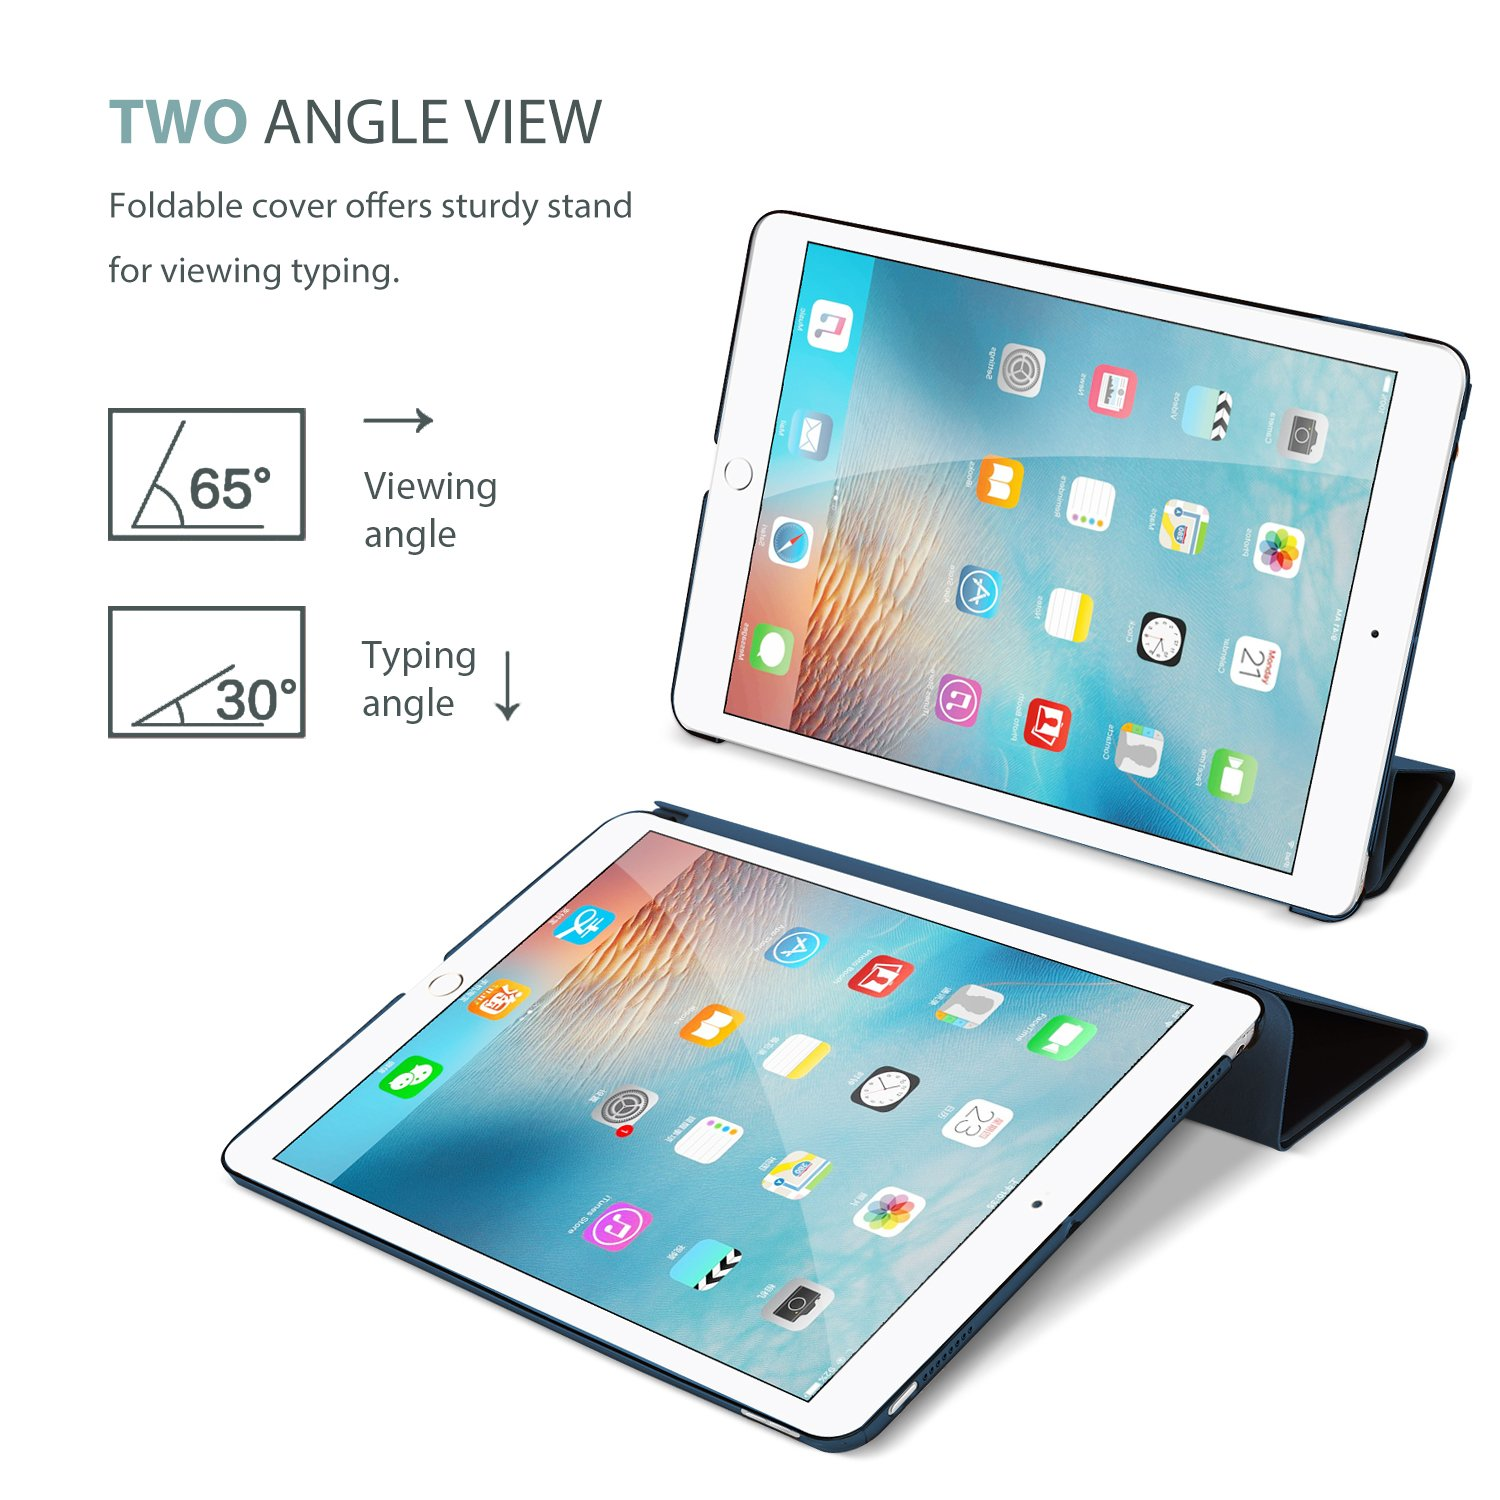 ProCase iPad 9.7 Case 2018 iPad 6th Generation Case / 2017 iPad 5th Generation Case - Ultra Slim Lightweight Stand Case with Translucent Frosted Back Smart Cover for Apple iPad 9.7 Inch -Navy Blue by ProCase (Image #5)